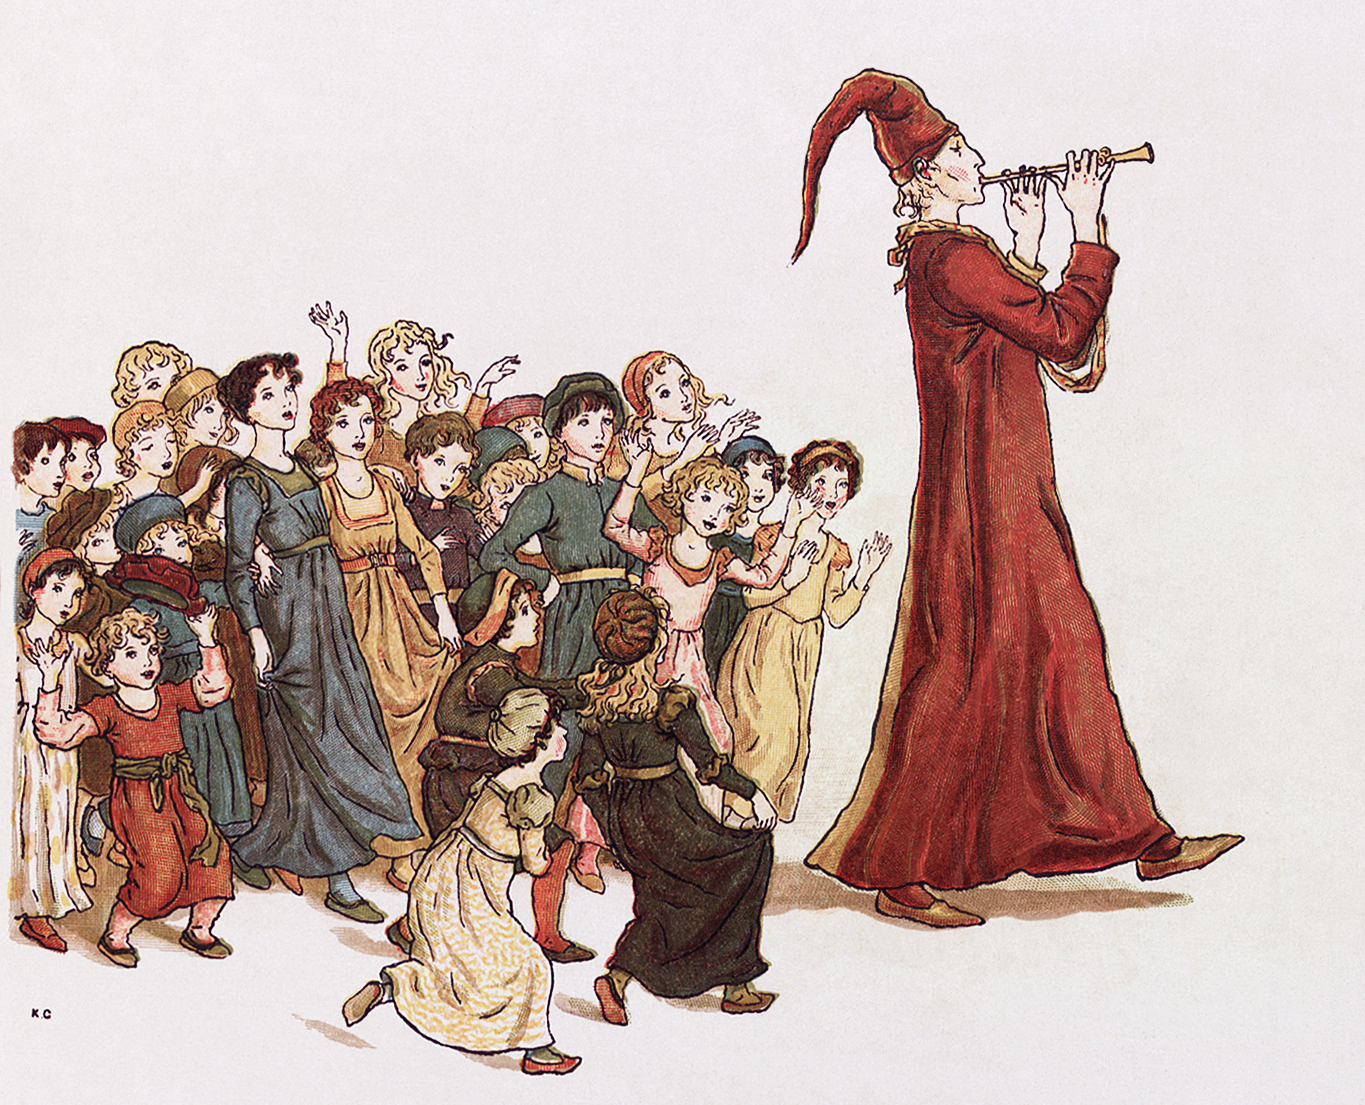 The Pied Piper leads the children out of Hamelin. Illustration by Kate Greenaway for Robert Browning's